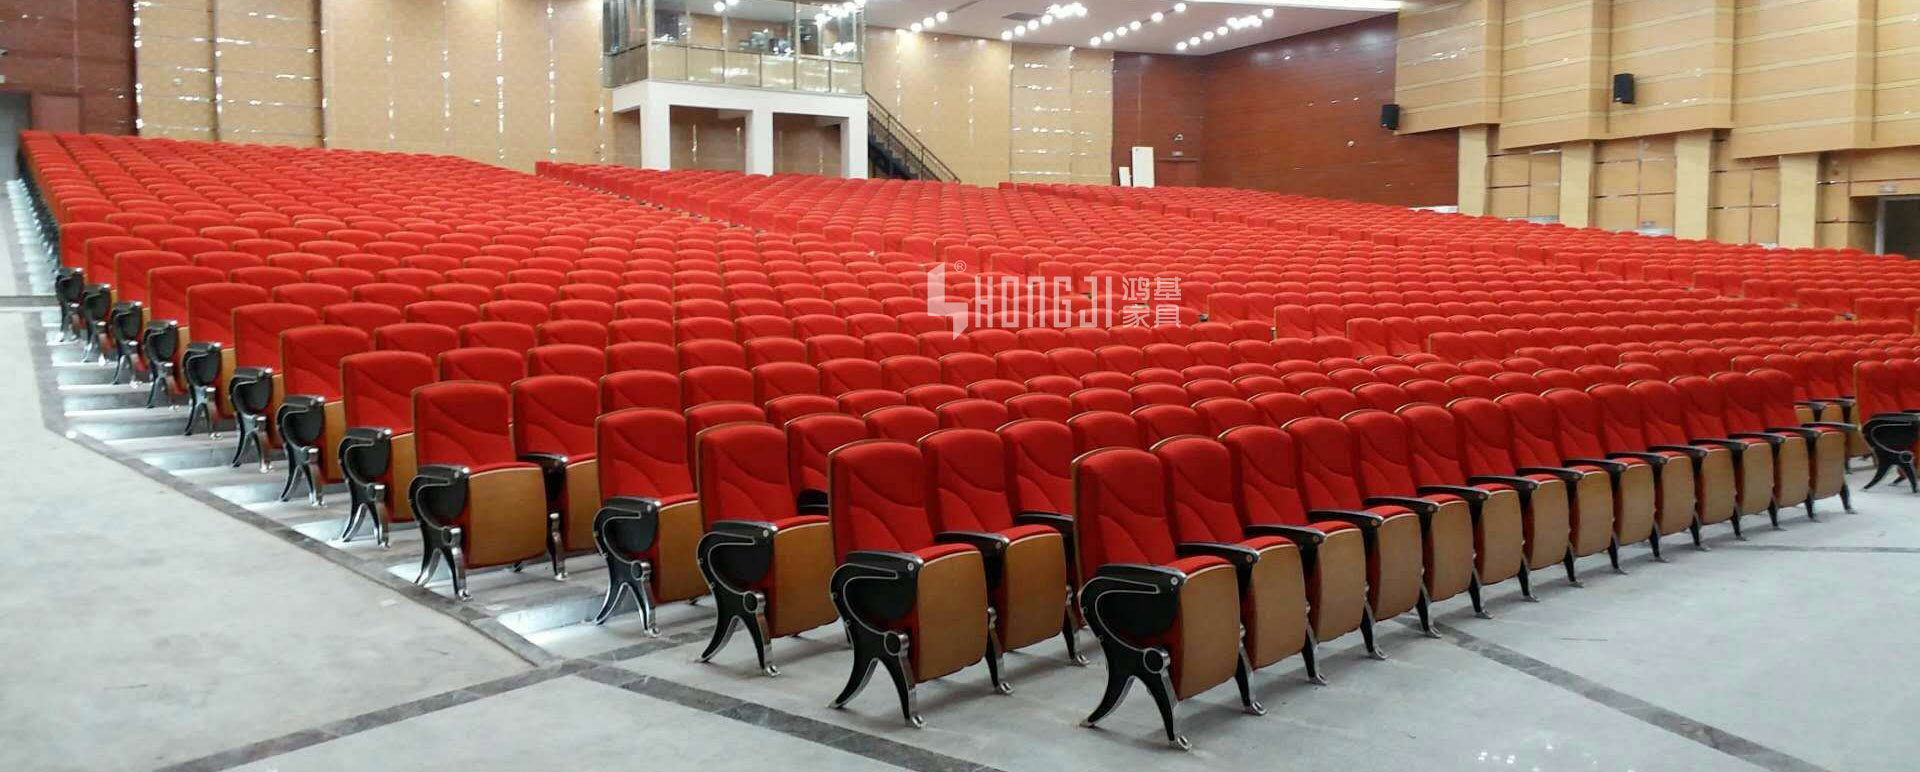 HONGJI elegant unique theater seating manufacturer for sale-9